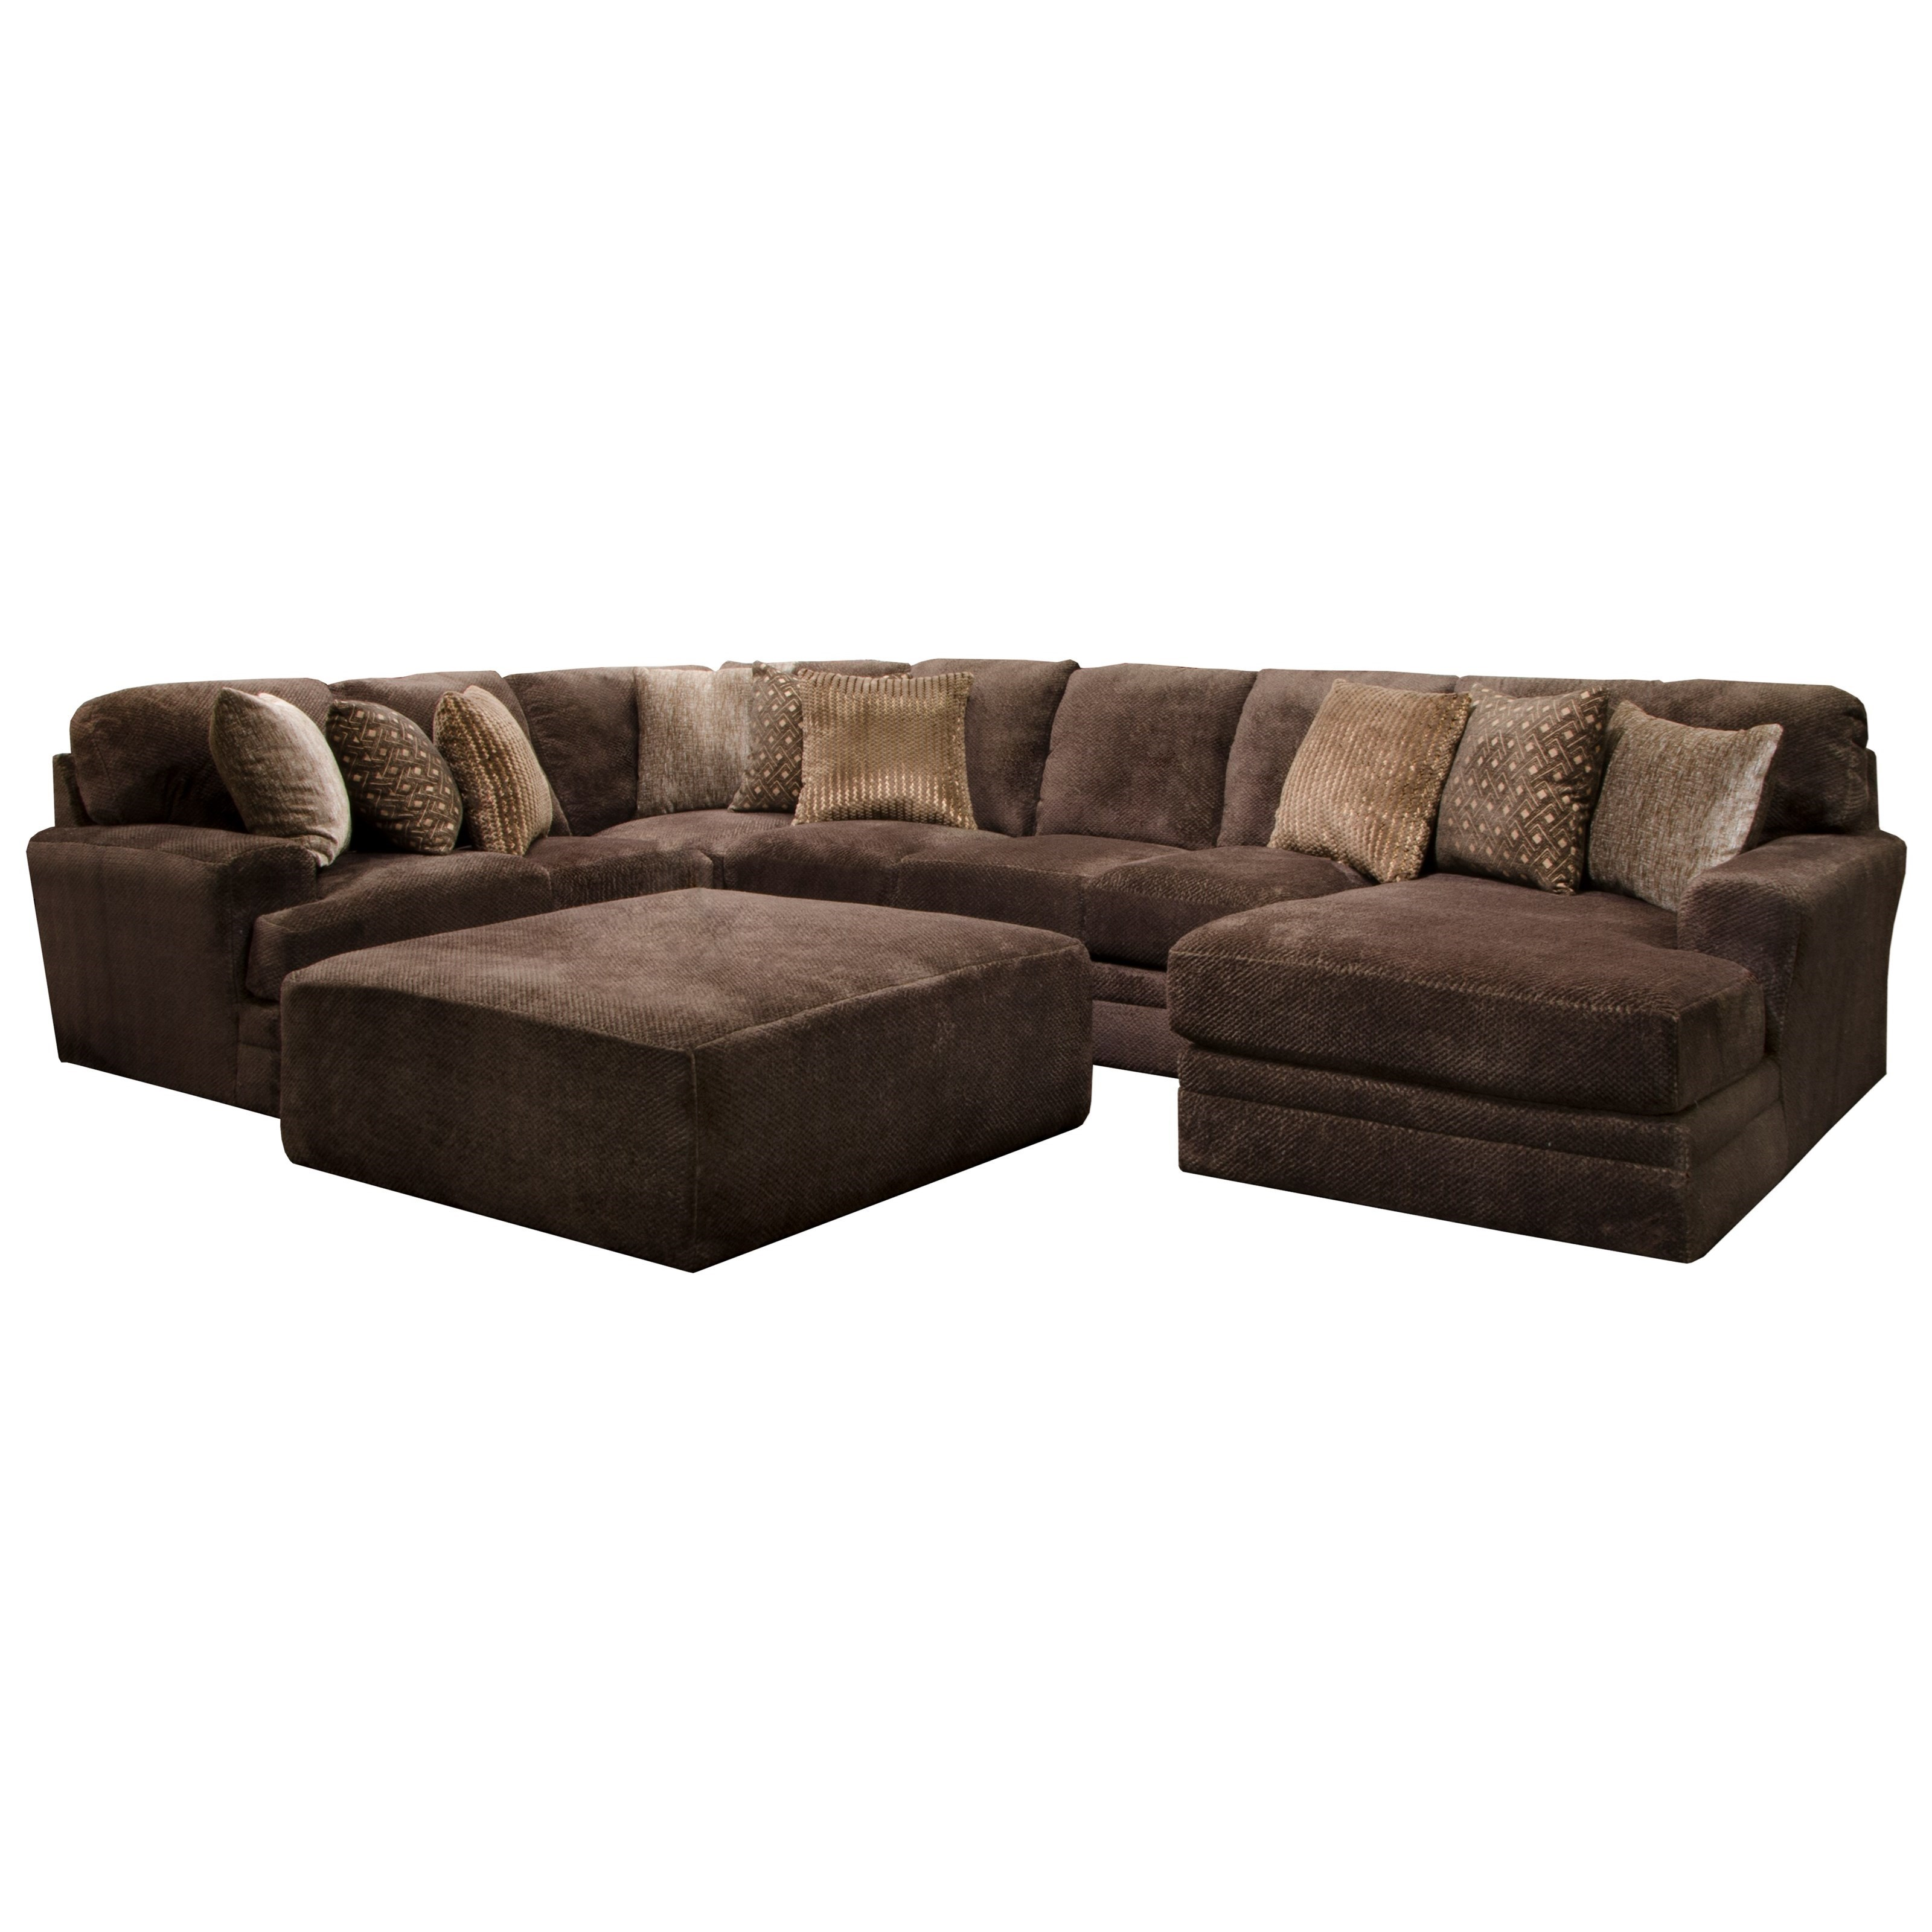 Mammoth 3 Piece Sectional by Jackson Furniture at Johnny Janosik